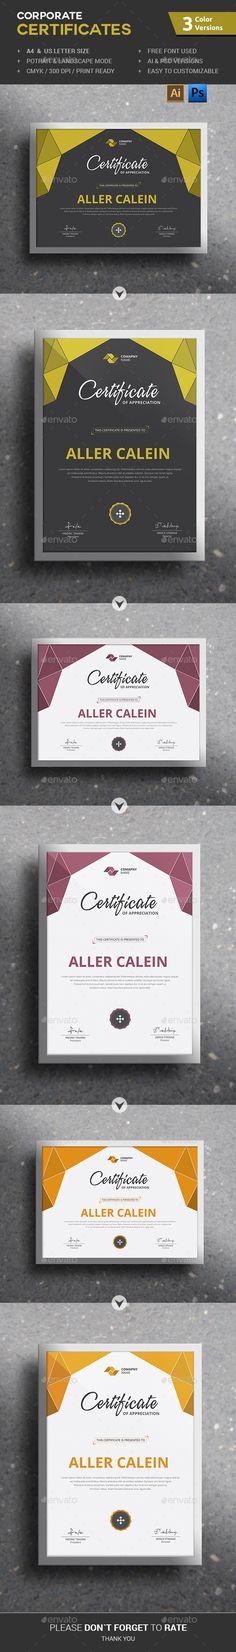 Corporate Certificates Template PSD, Vector AI. Download here: http://graphicriver.net/item/corporate-certificates/12950160?ref=ksioks